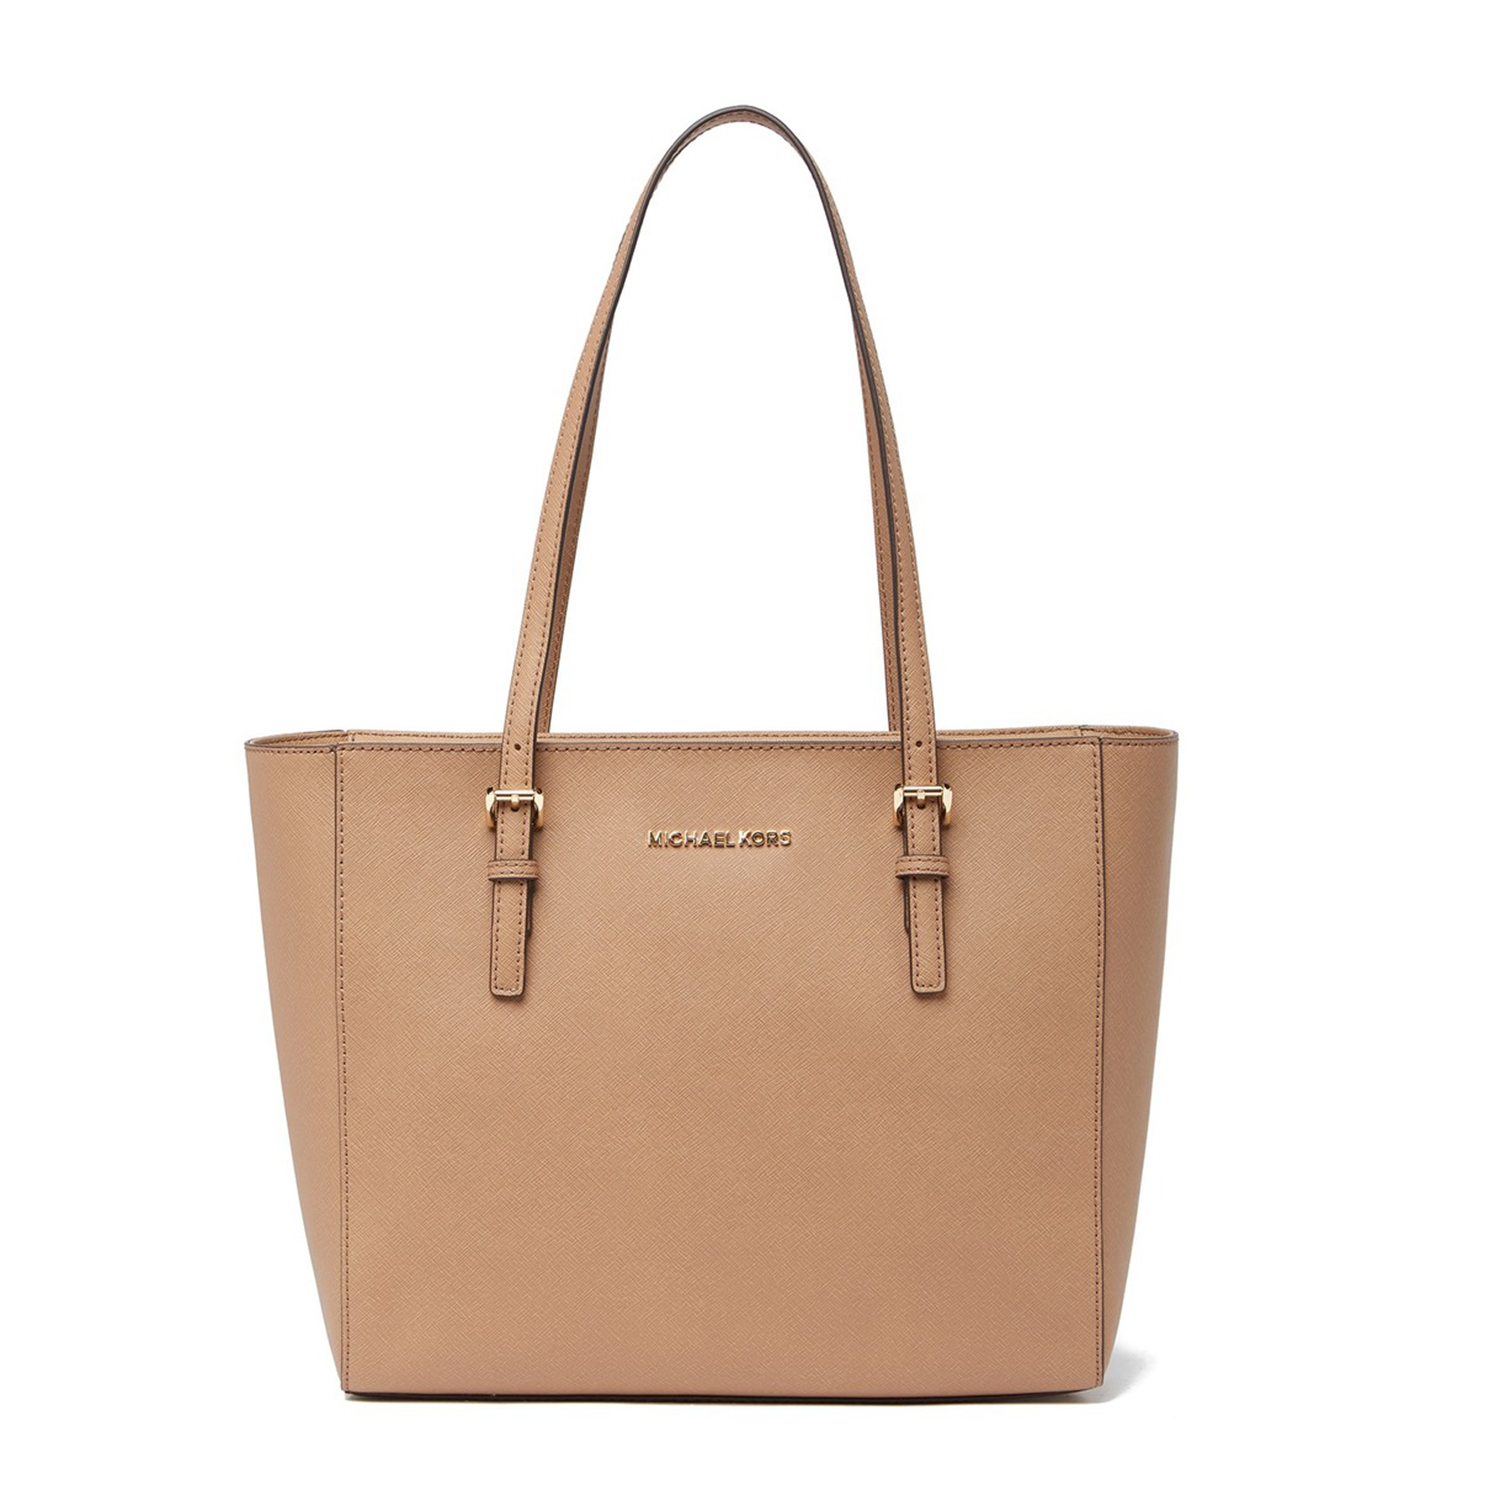 Michael Kors Jet Set Medium Travel Tote Bag